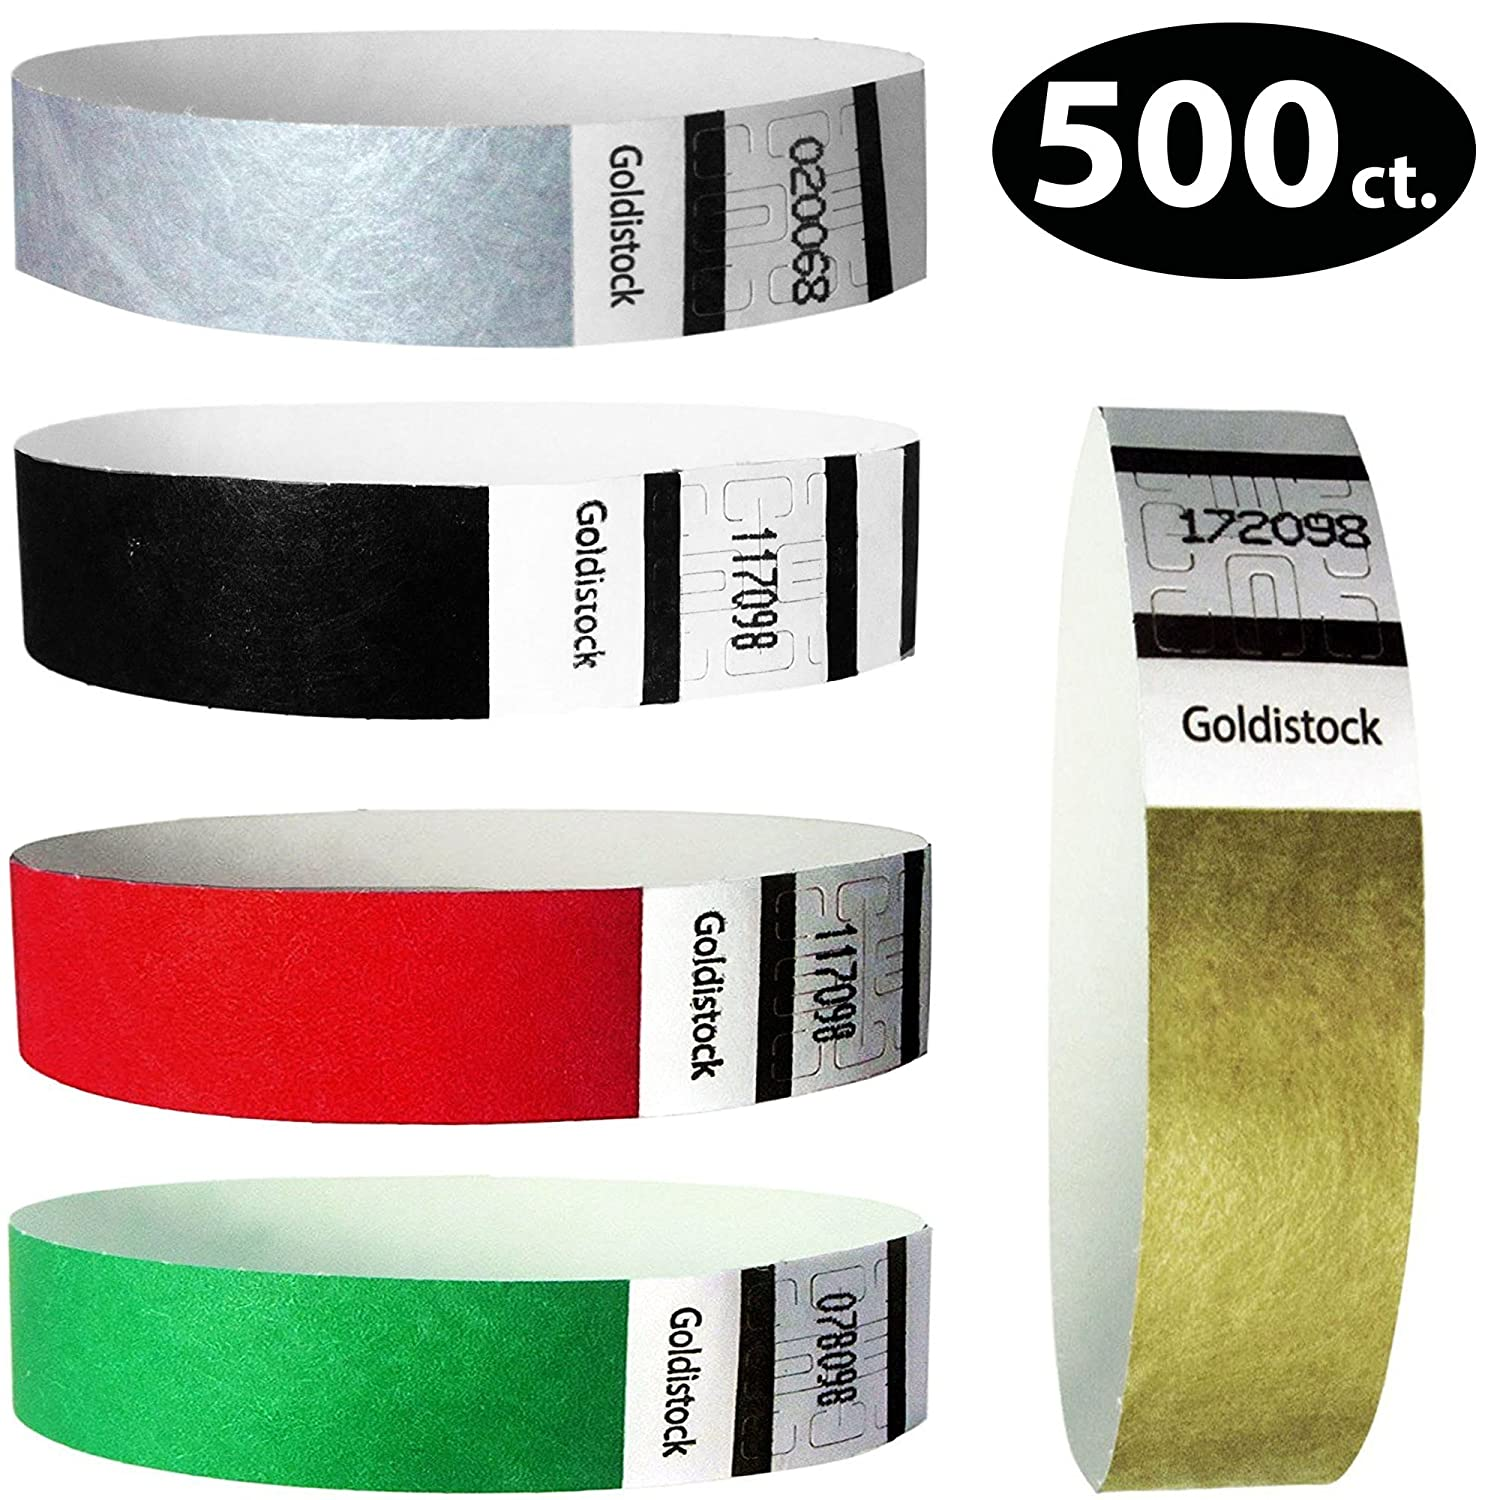 Goldistock 3/4 Tyvek Wristbands Formal 500 Count Variety Pack- 100 Each: Black, Metallic Gold & Silver, Evergreen, Bright Red